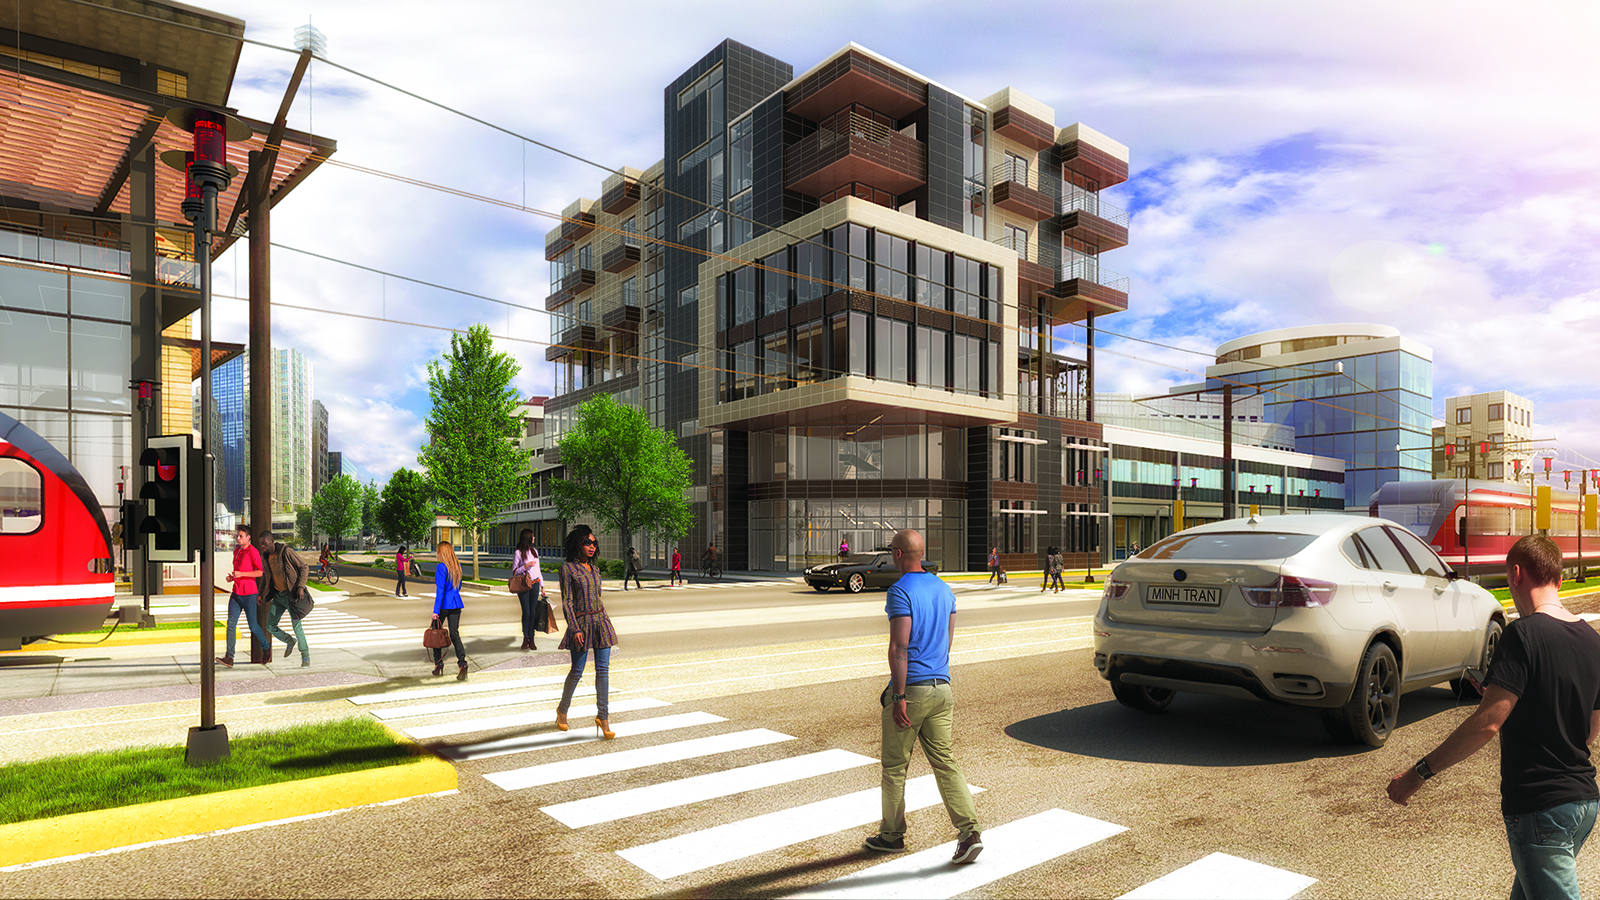 Completing the Iris Complex, at the intersection of Millennial Curve and Axis Avenue; this is where Arboria Library stands.